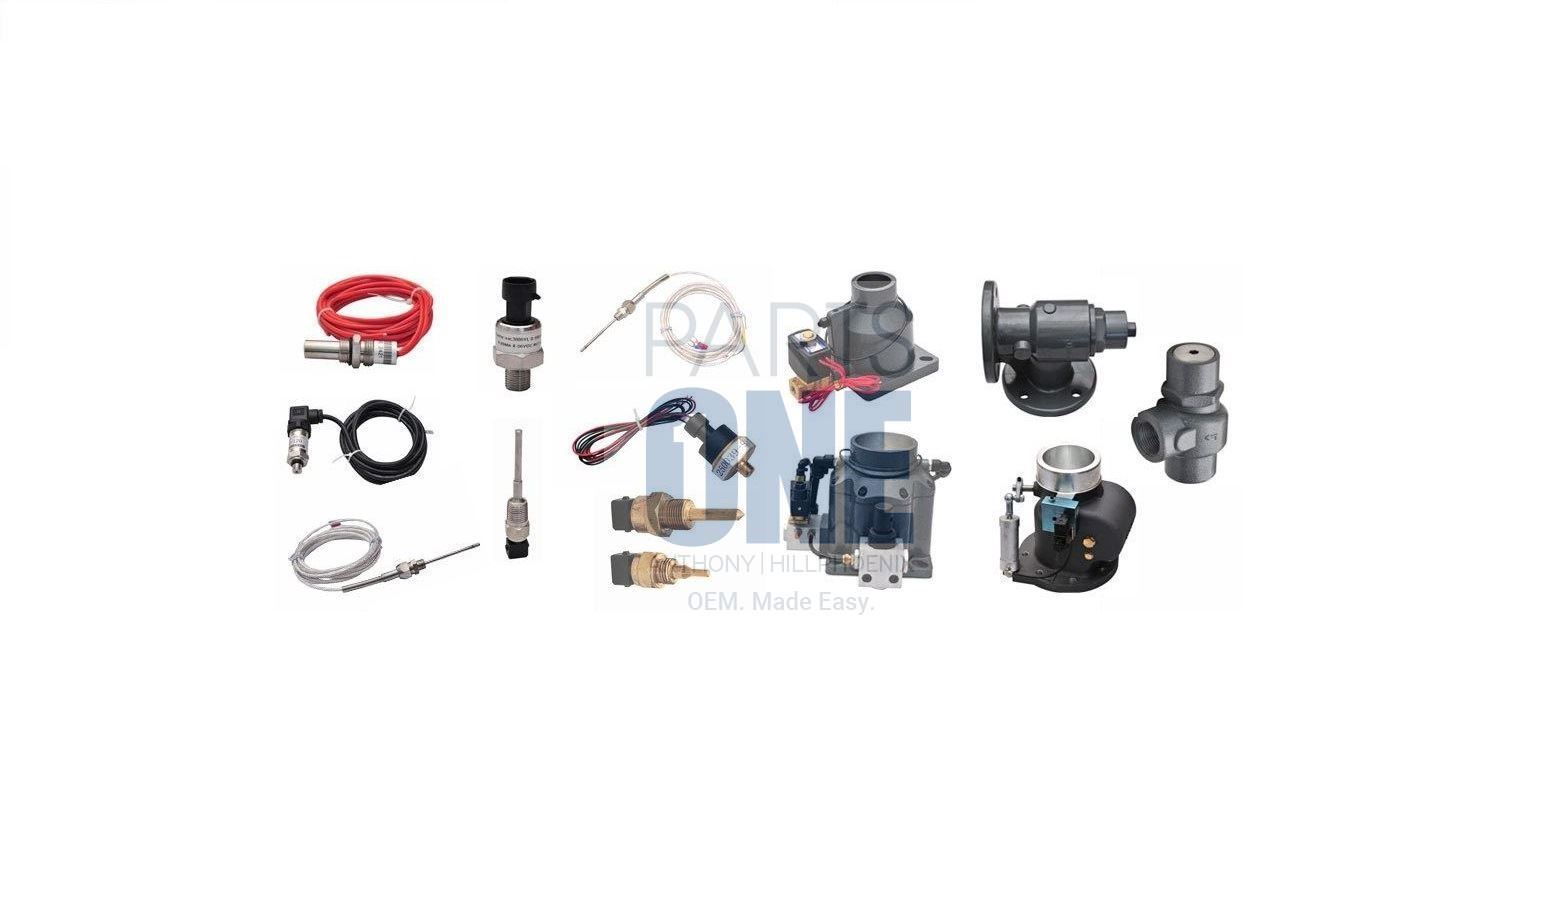 Picture for category Supplies and Service